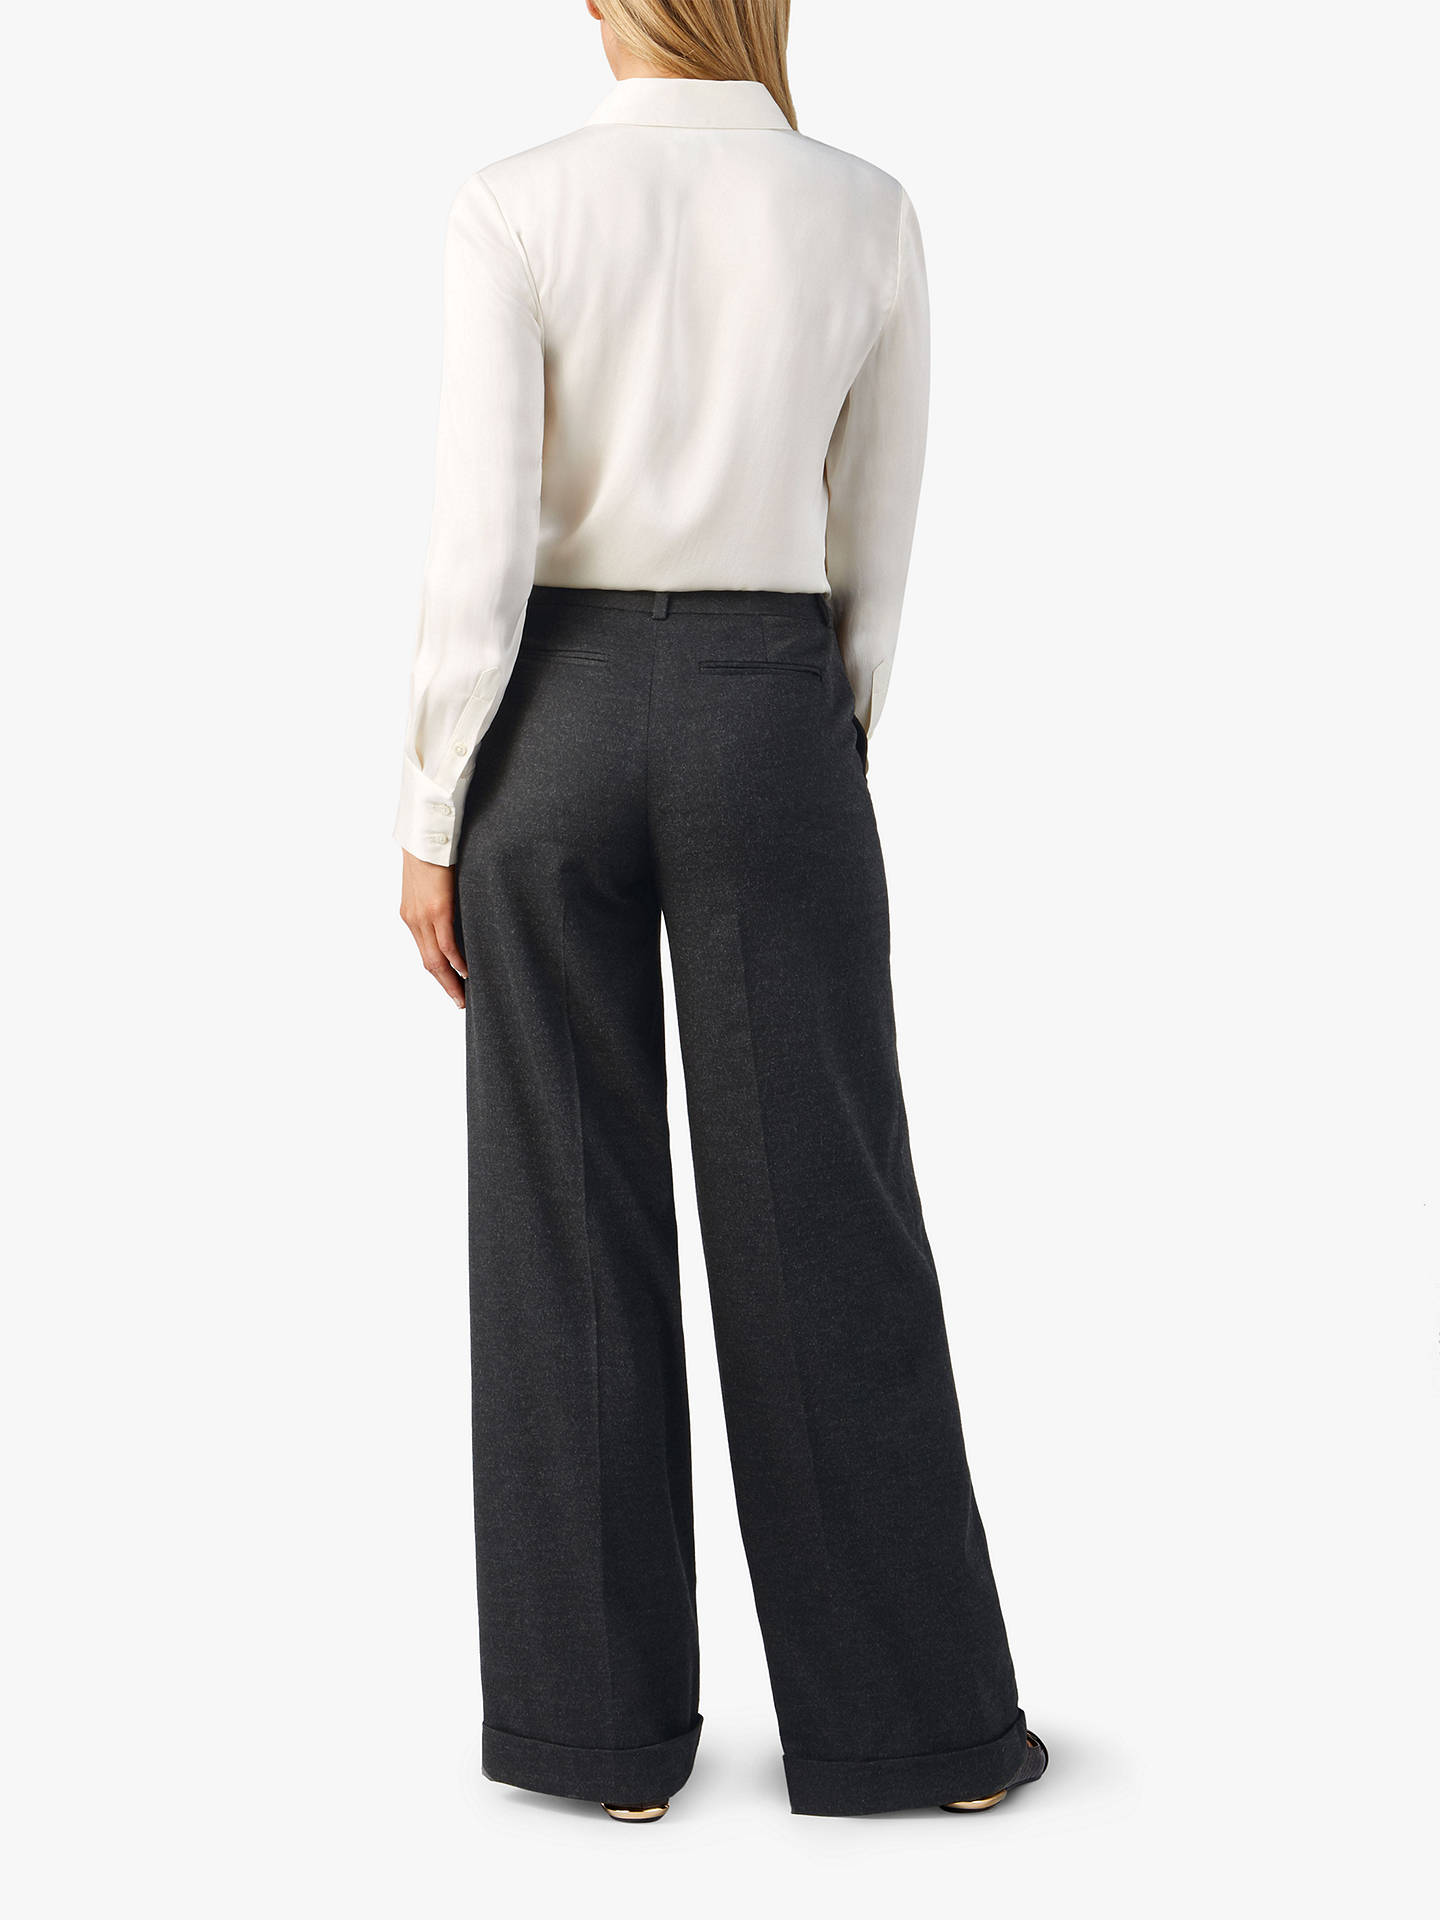 BuyPure Collection Wide Leg Trousers, Charcoal Marl, 8 Online at johnlewis.com